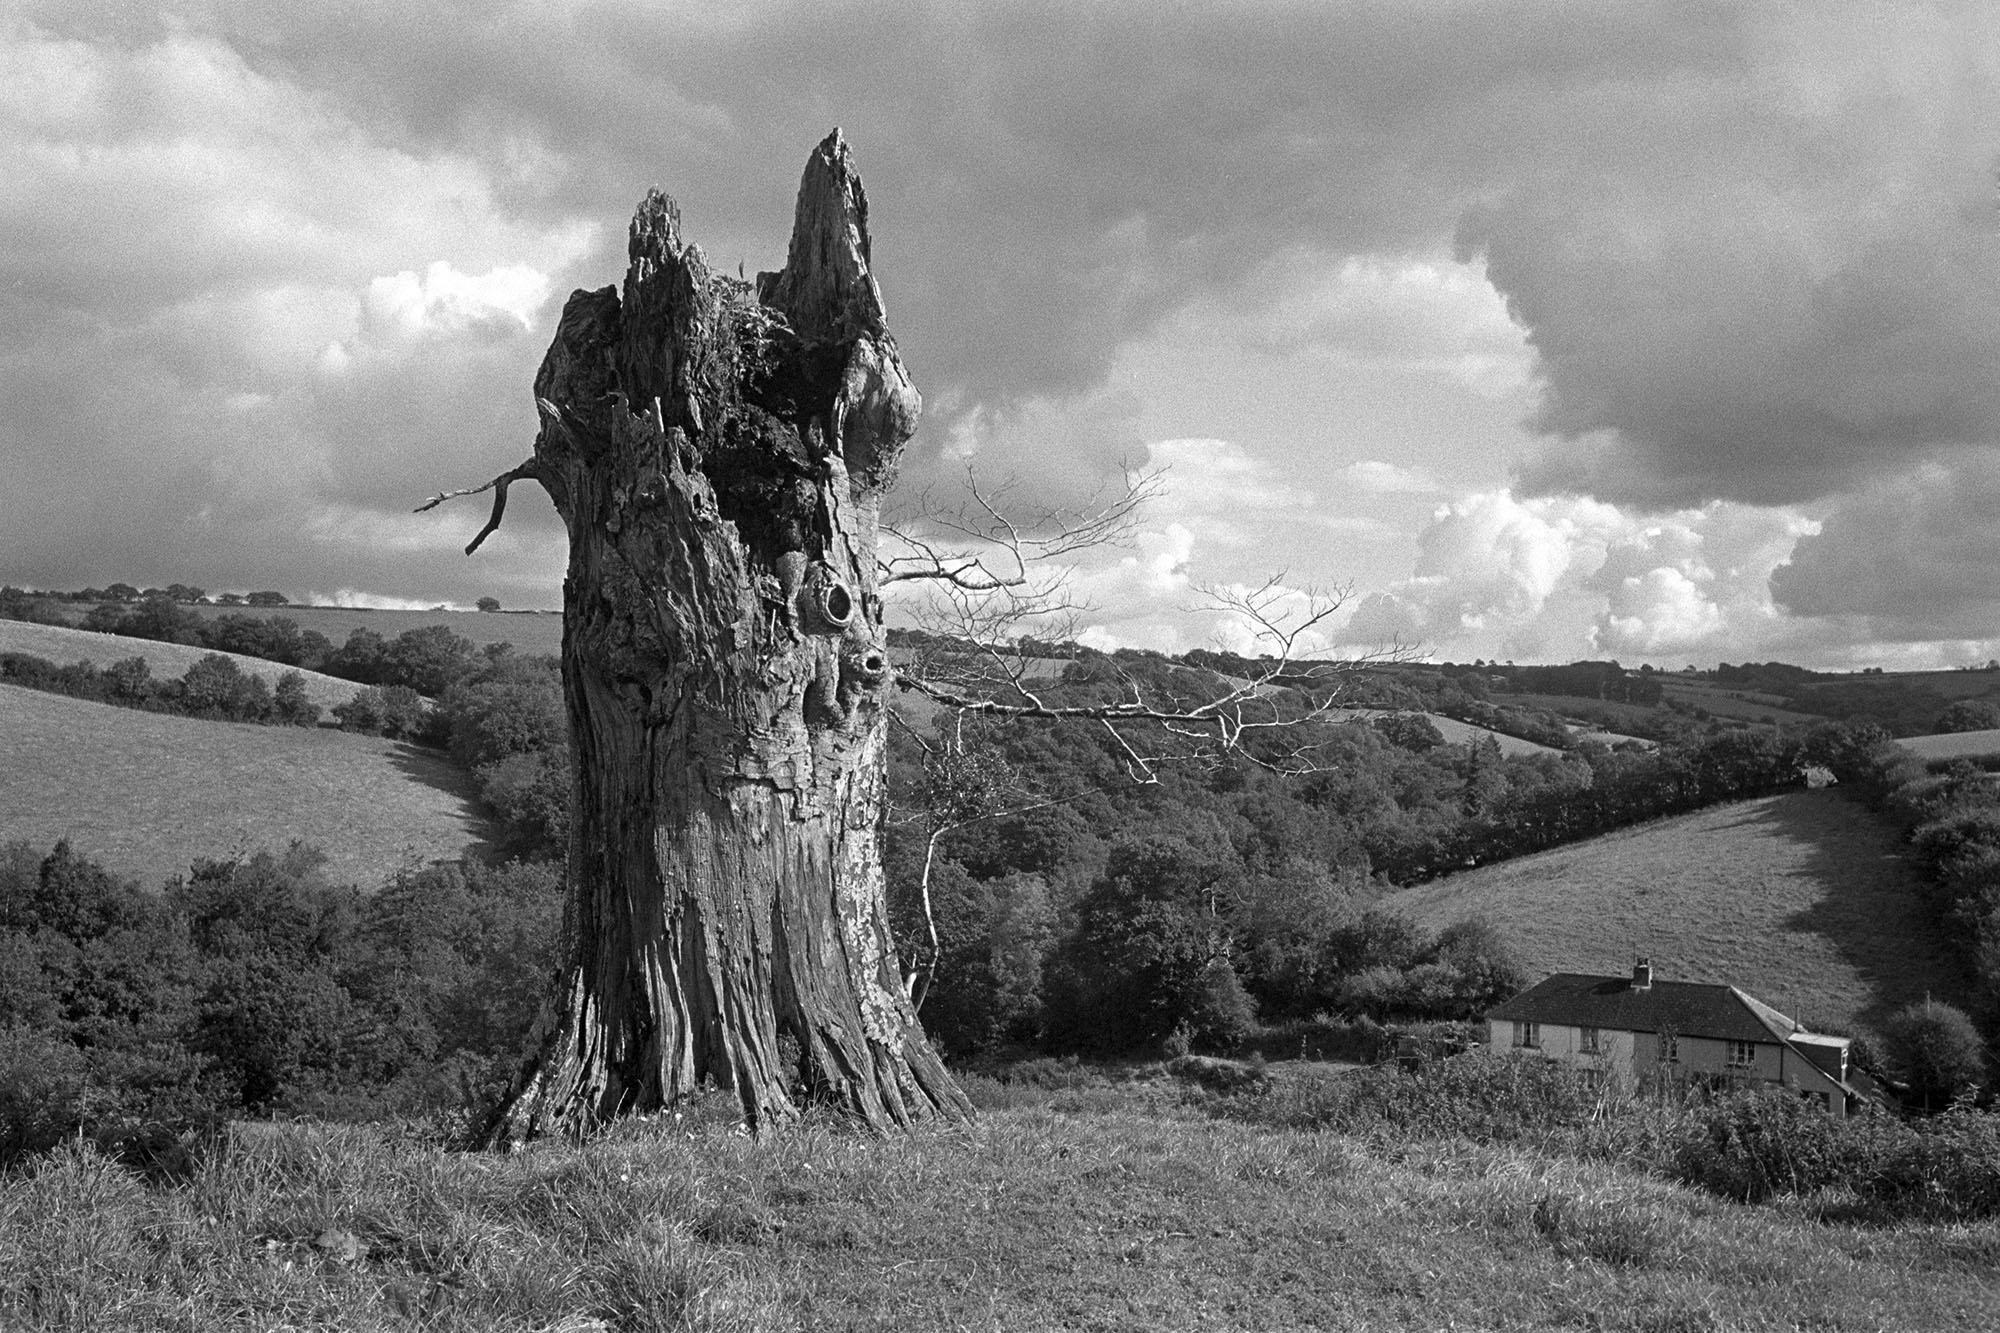 Trunk of old beech tree in clouded landscape. <br /> [The trunk of a dead beech or oak tree in a field at Spittle, Chulmleigh. A landscape with fields, trees, a farmhouse and clouds is in the background.]